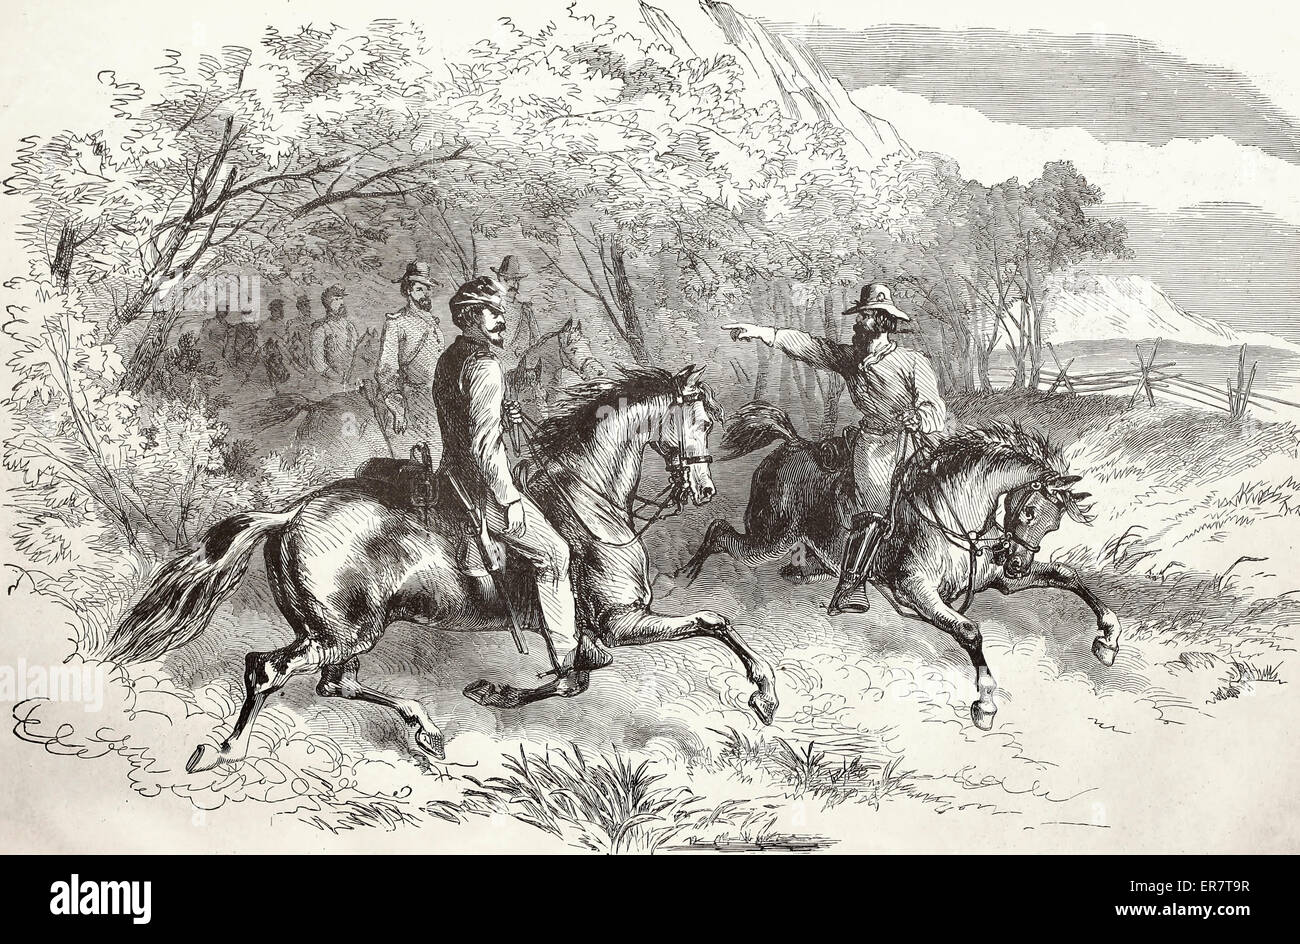 United States Cavalry Scouting in the Neighborhood of Fairfax Courthouse, Virginia at the start of the USA Civil - Stock Image